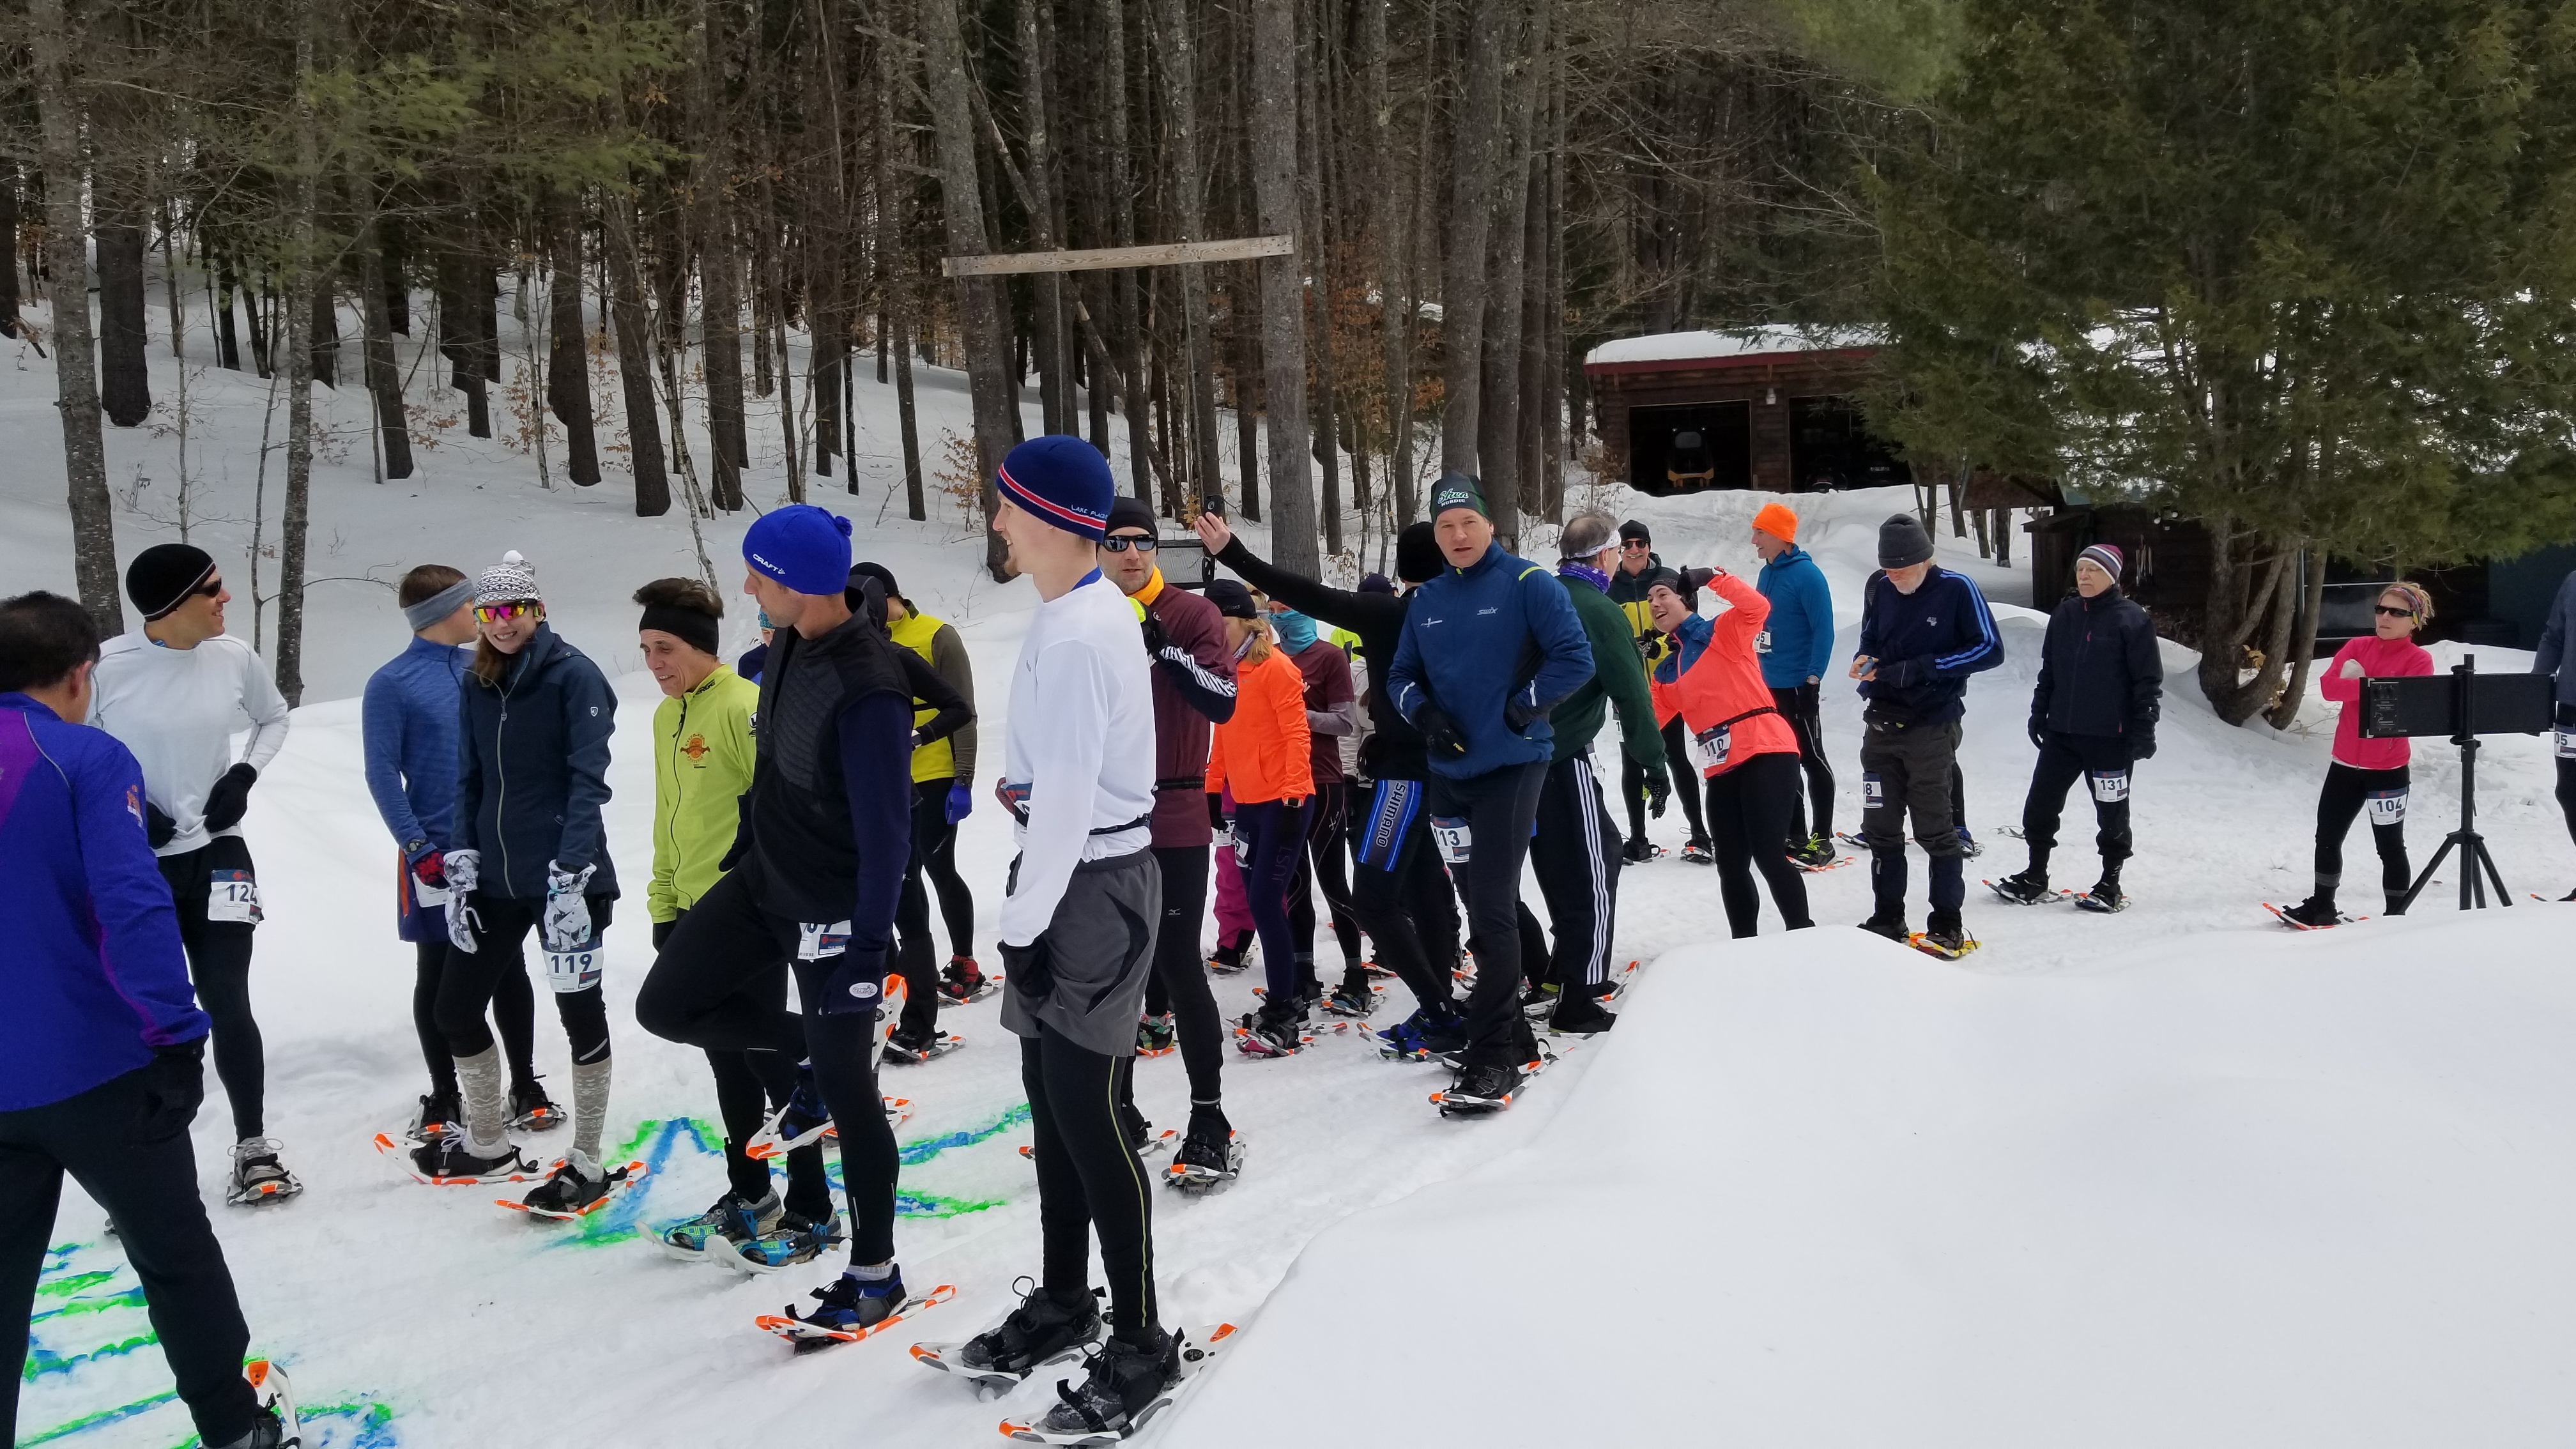 Sign up now for 6k & 15k Snowshoe Races on Sun Feb 16th